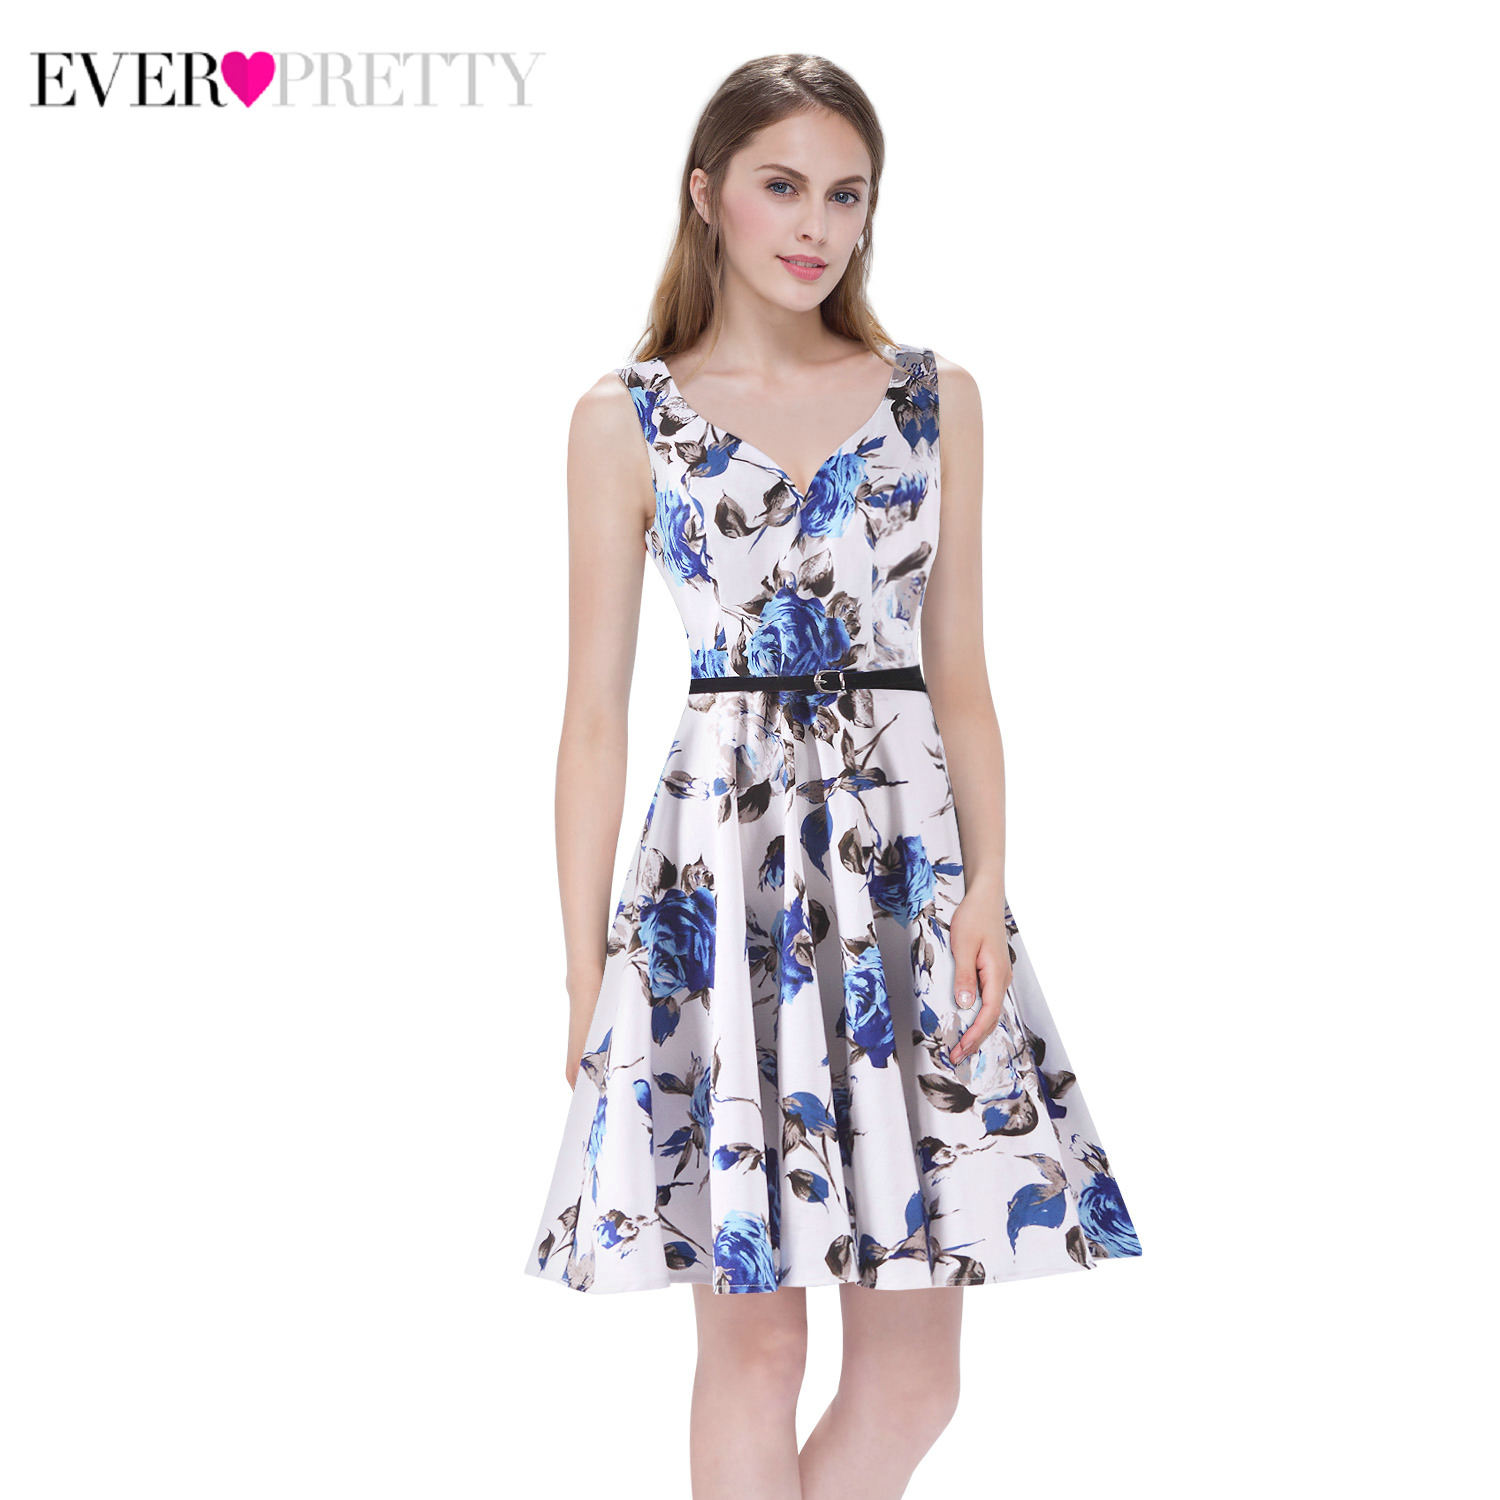 Homecoming Dresses Ever Pretty Floral Print Sleeveless Formal Dresses AS05531 Summer Beach Party Dresses Mezuniyet Elbiseleri